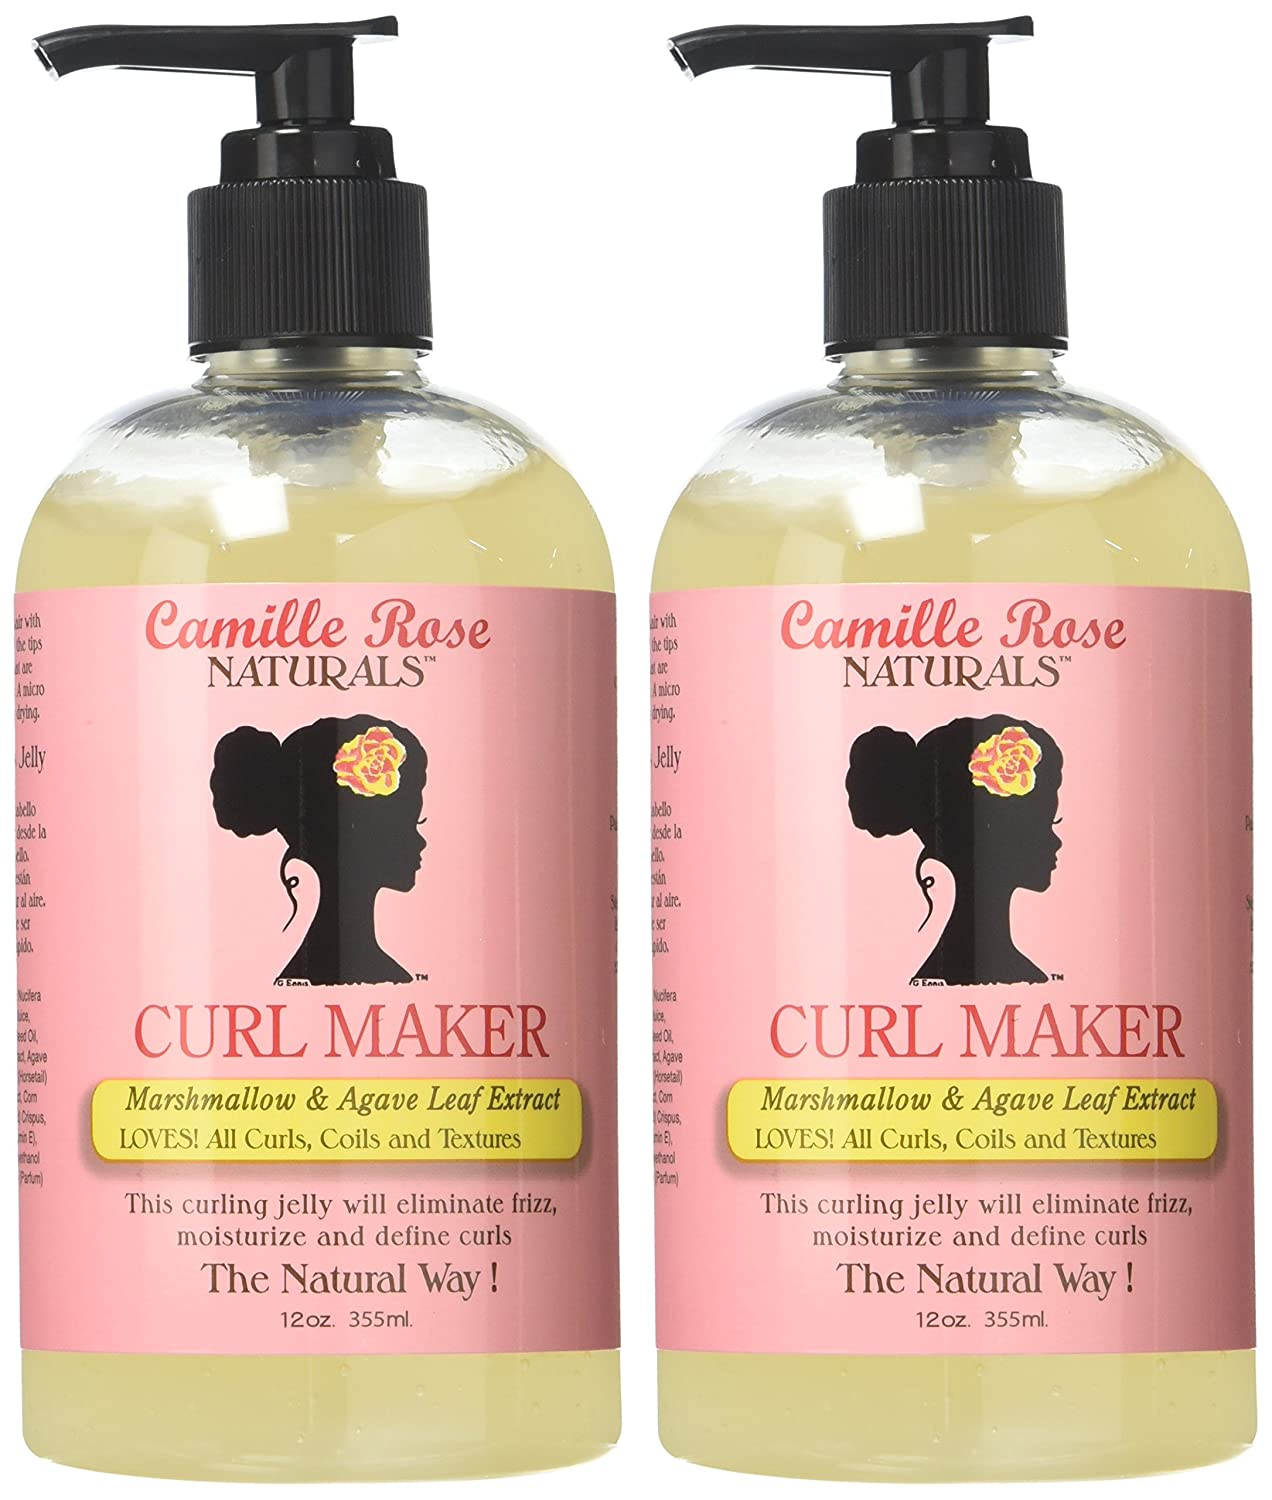 Amazon.com : Camille Rose Naturals Curl Maker, (2 Pack of 12 Ounce) : Beauty